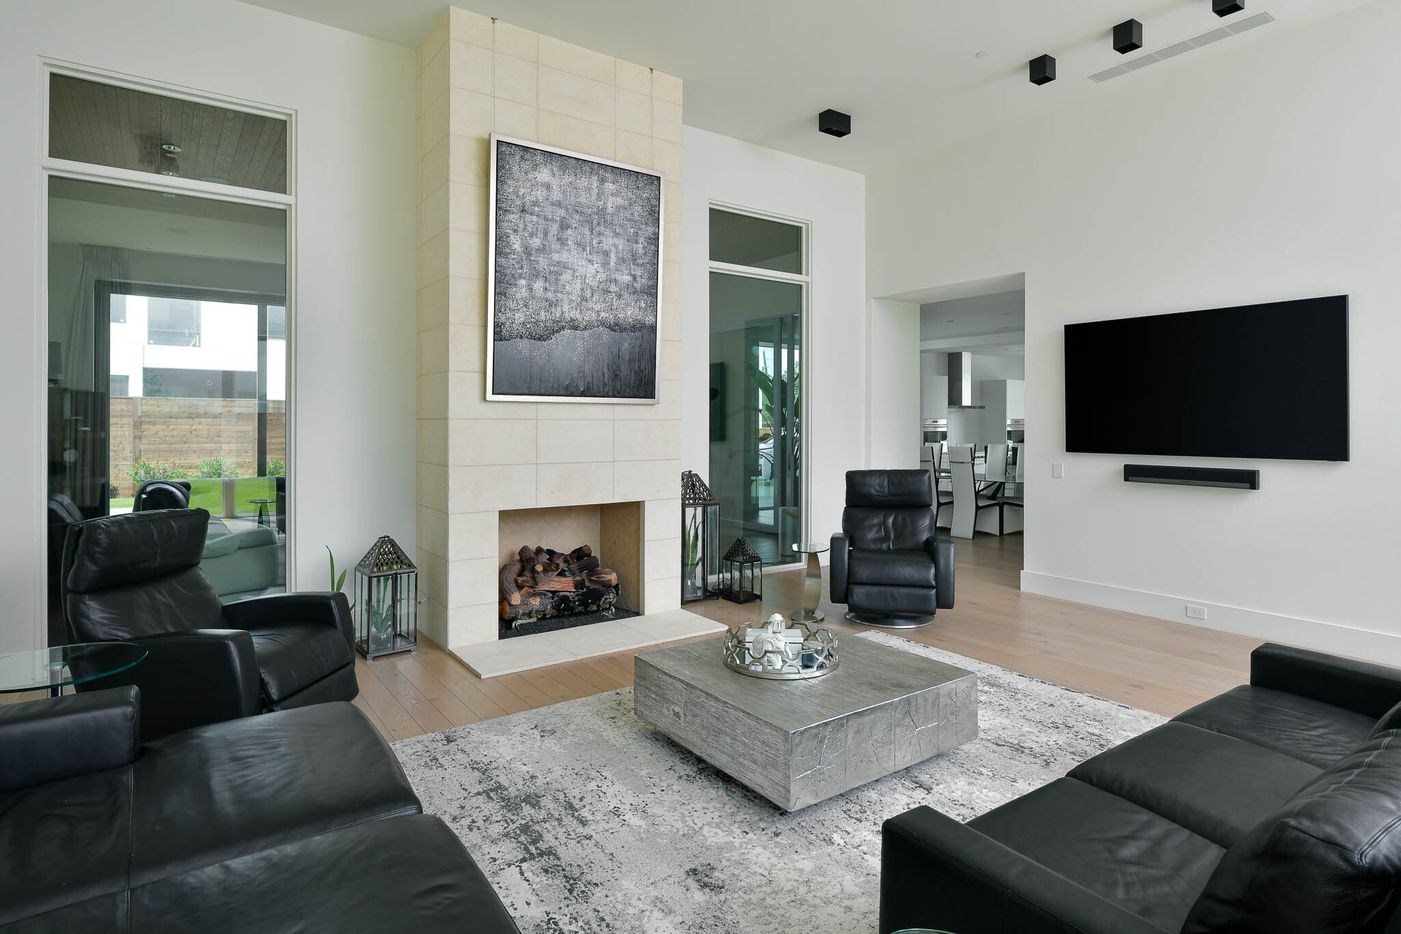 Take a look at the home at 5816 Walnut Hill Lane in Dallas.